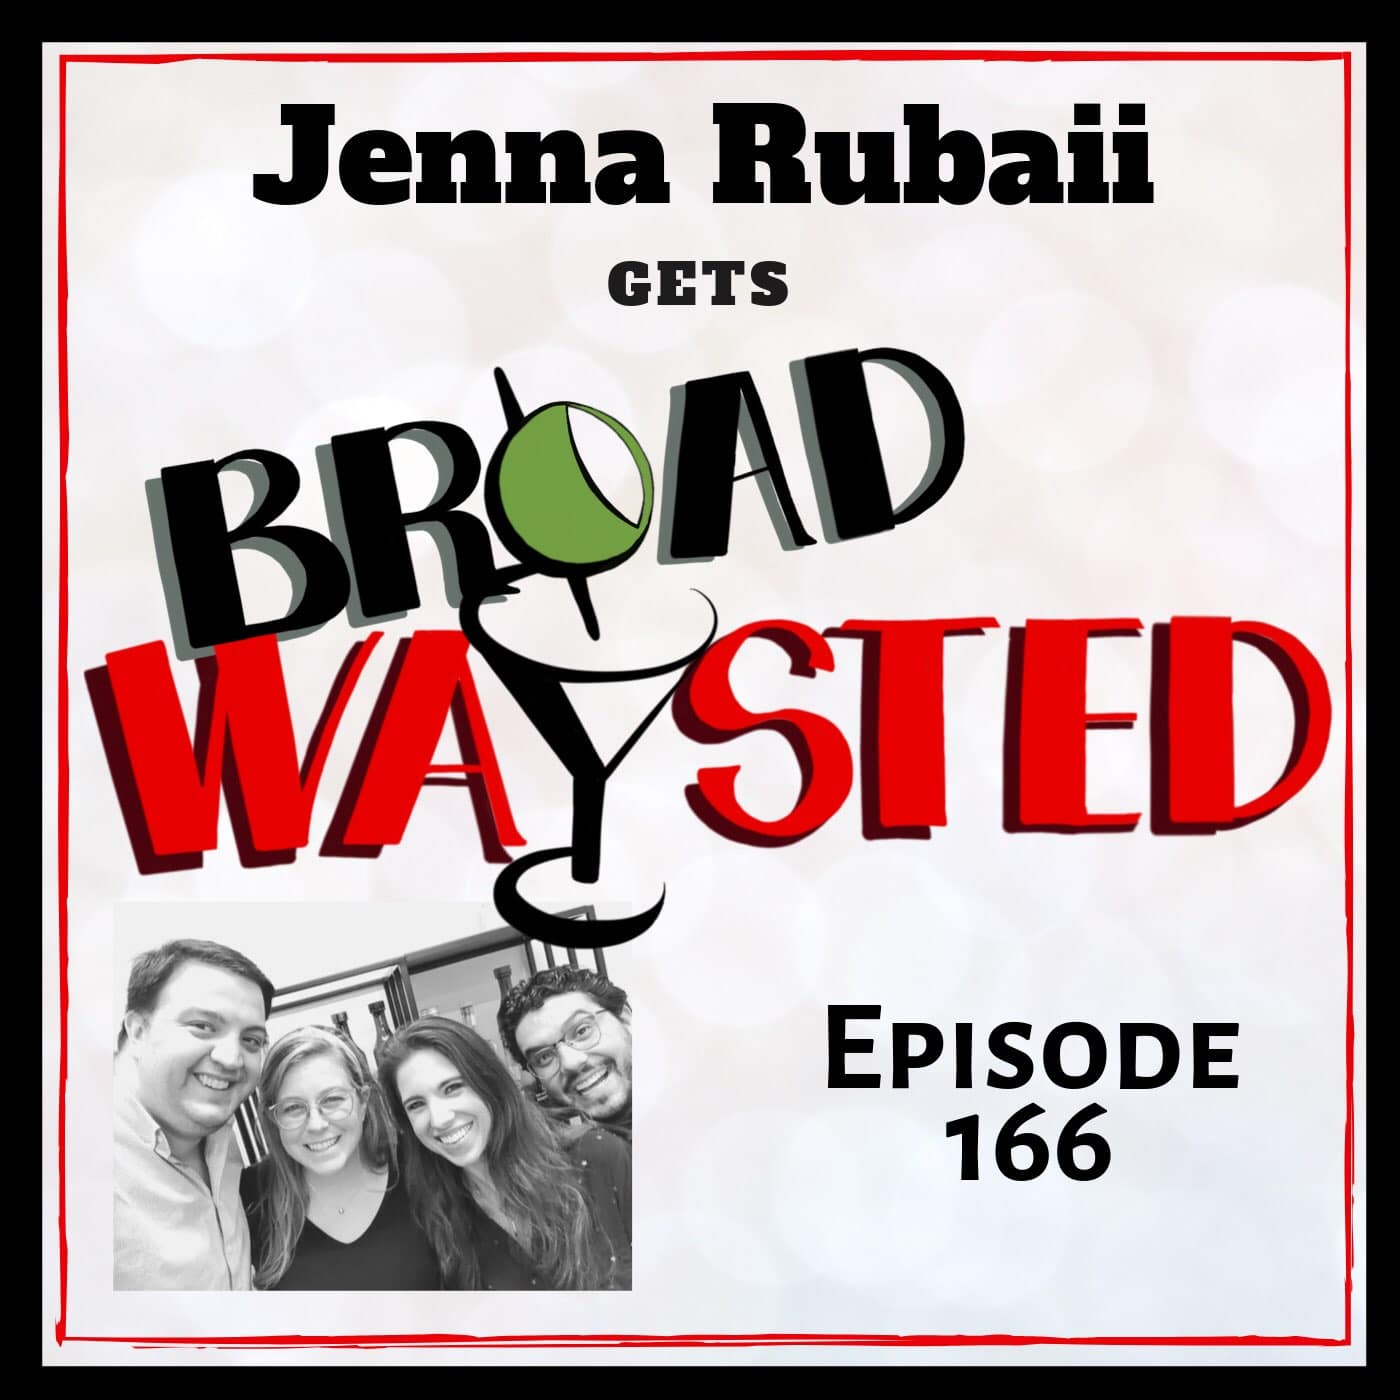 Broadwaysted Ep 166 Jenna Rubaii